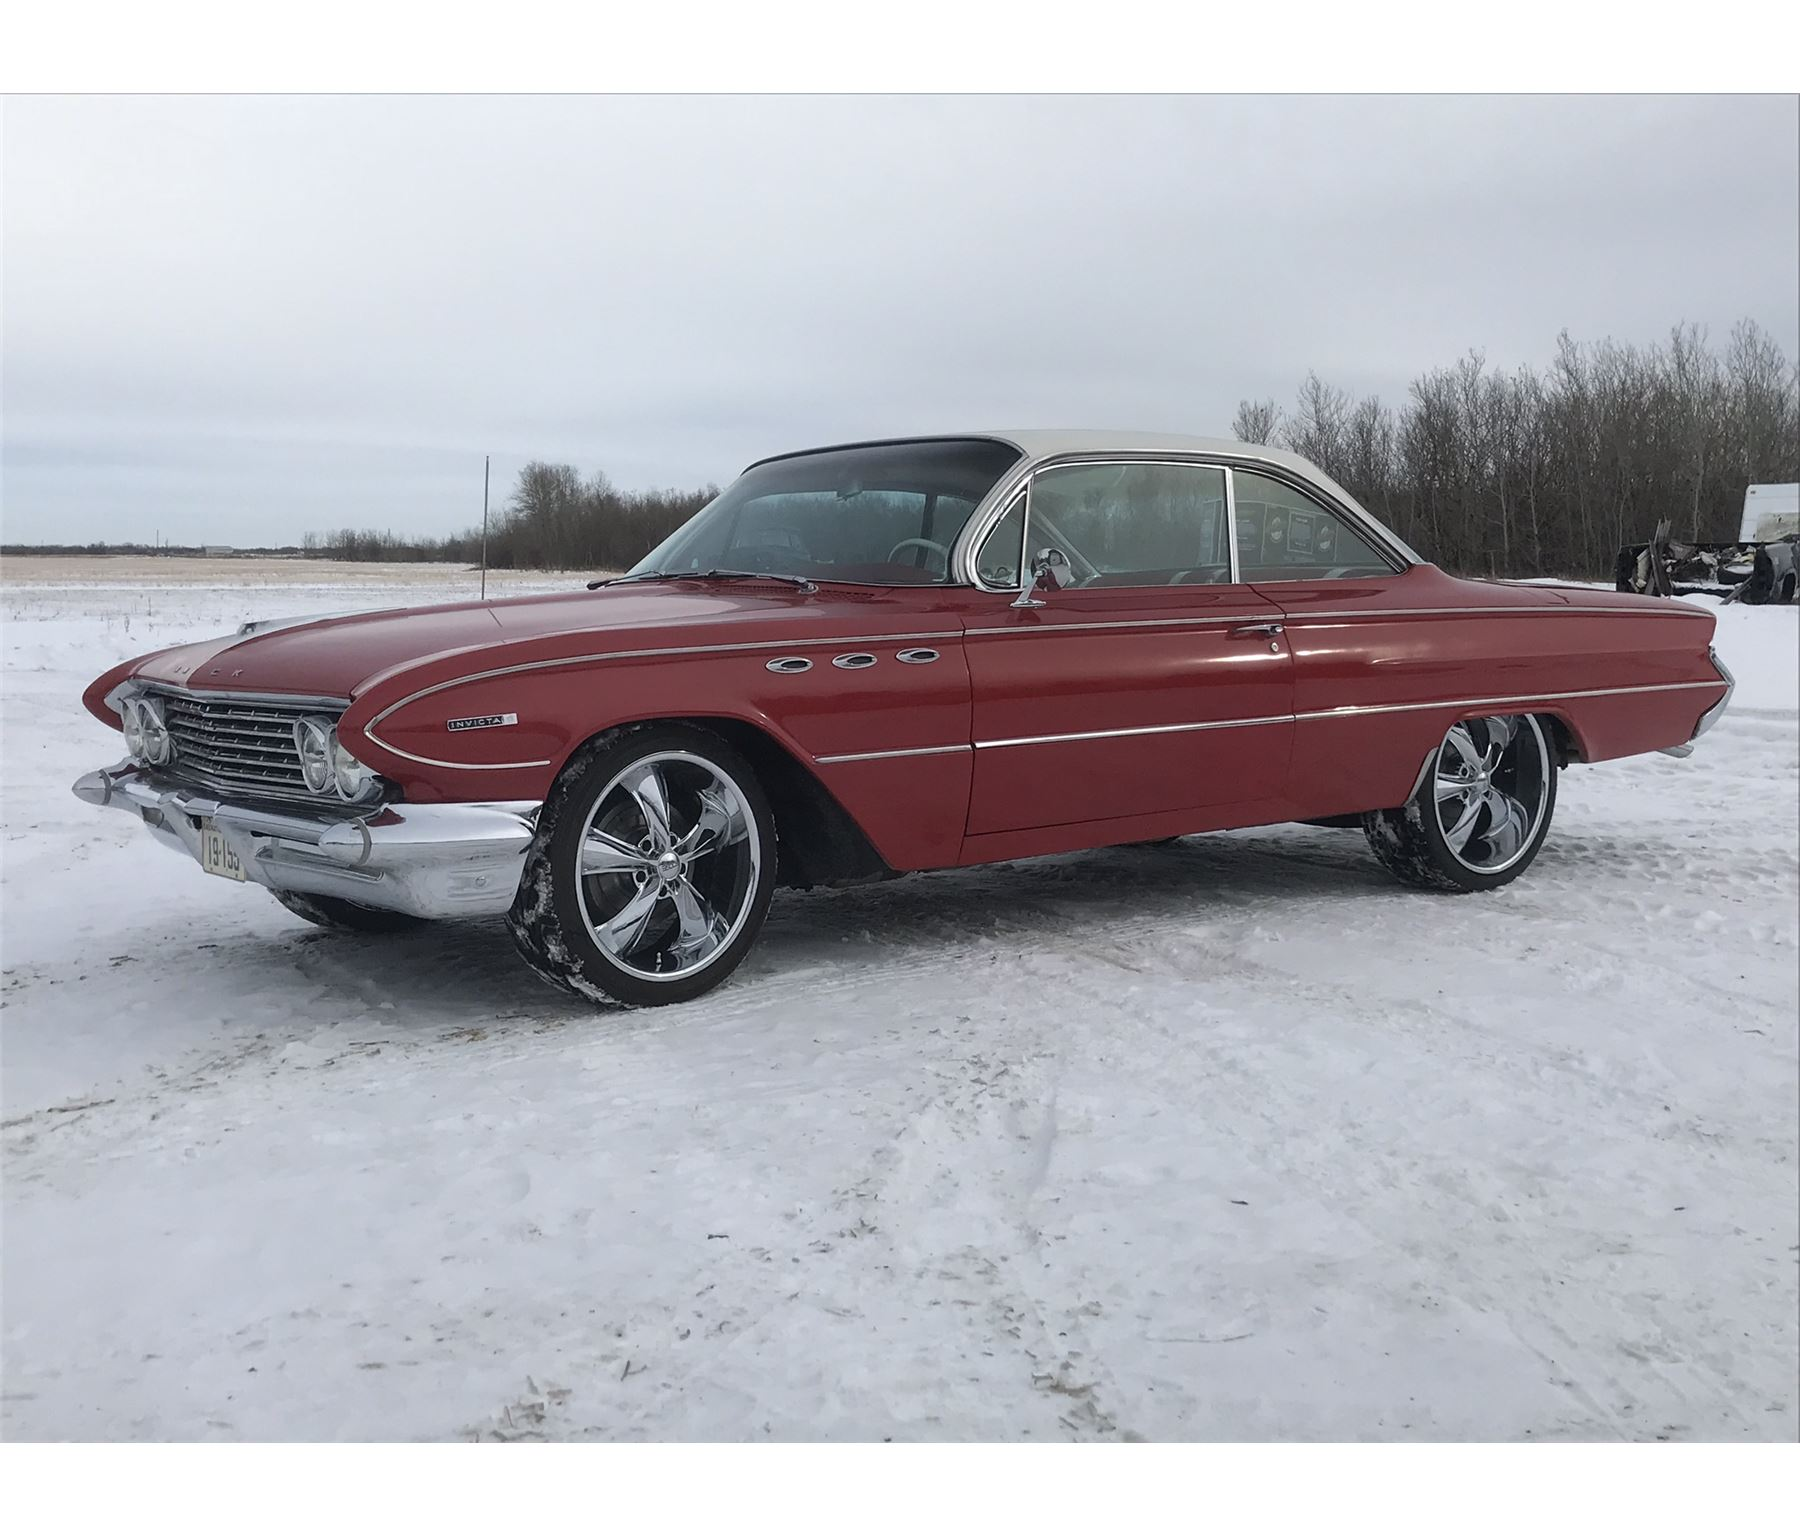 small resolution of image 1 1961 buick invicta 2 door bubble top